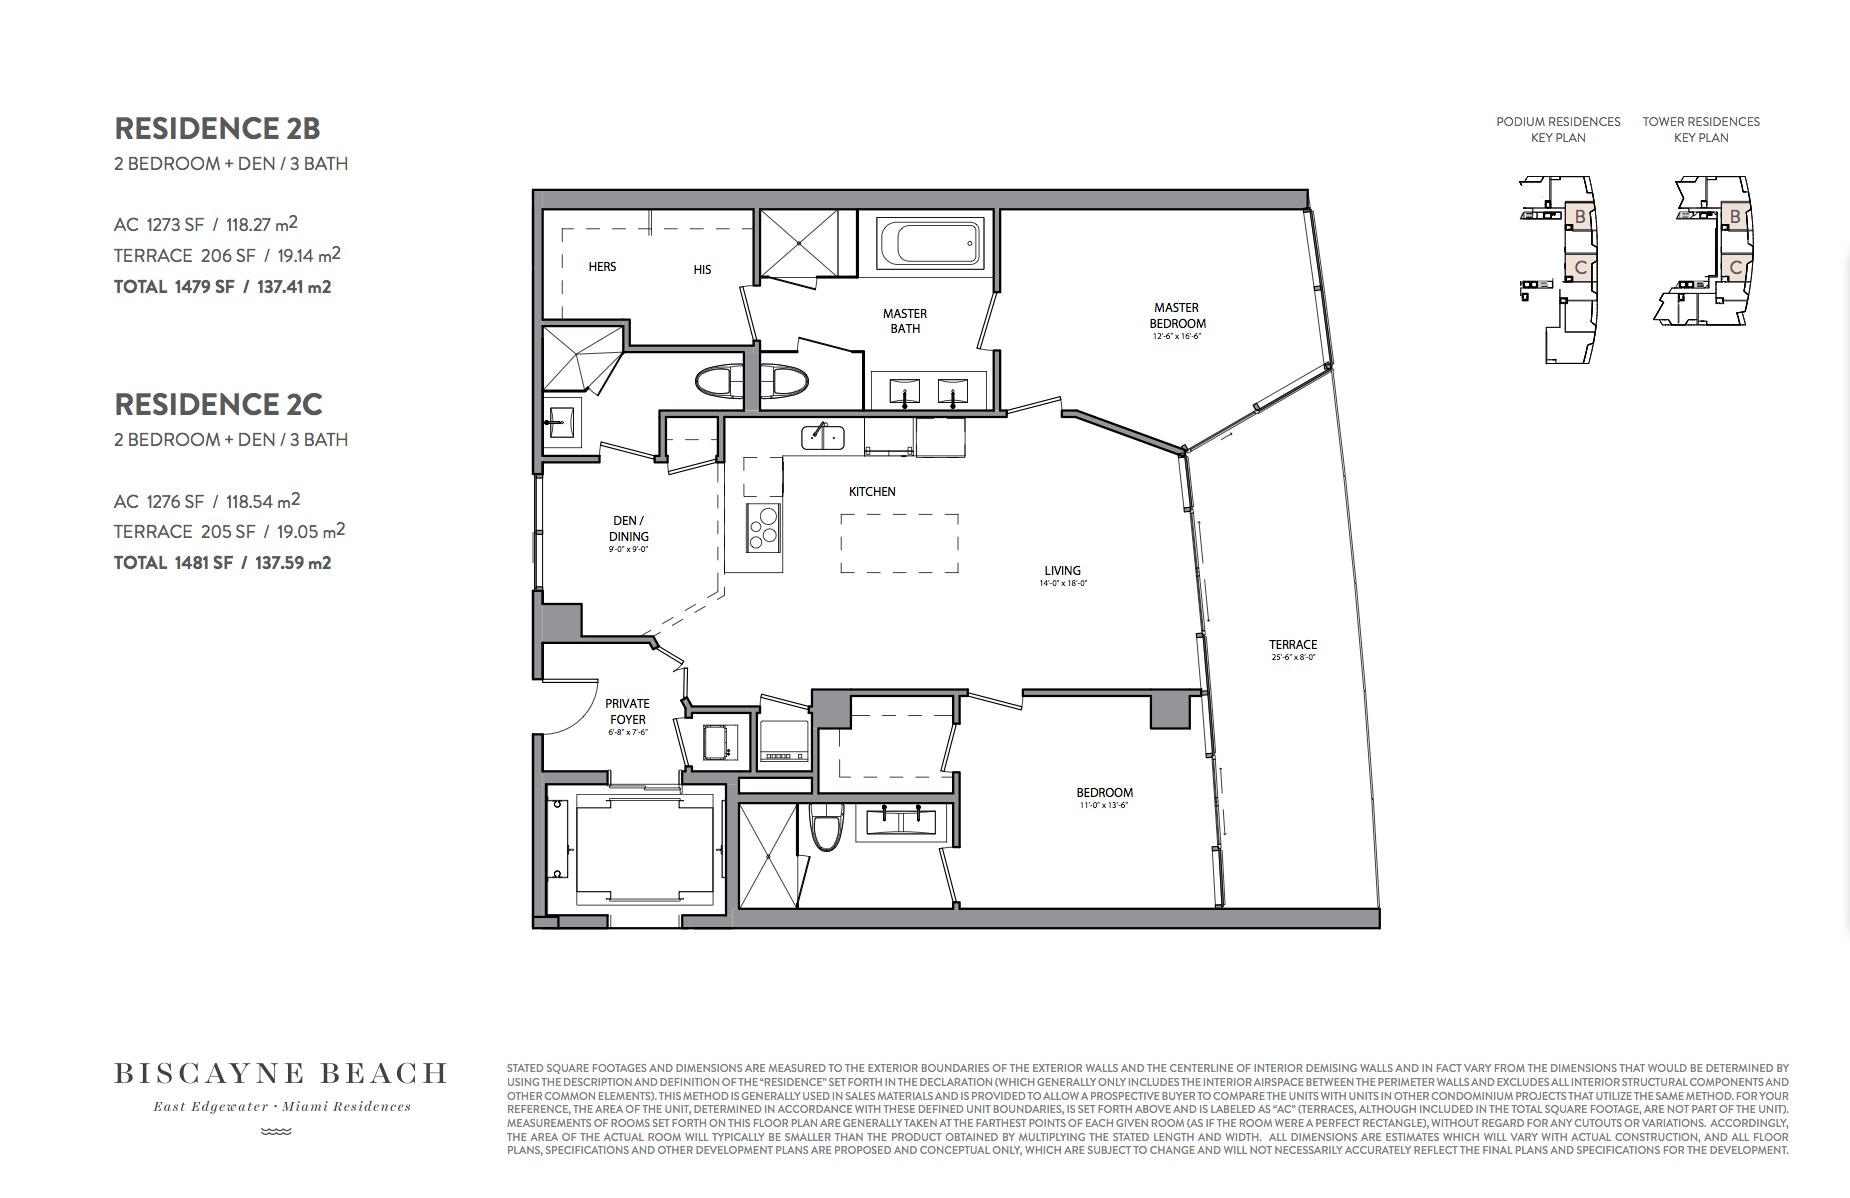 Biscayne beach condos 701 ne 29 st investinmiami 03 line 2b 1273 sq ft east view direct bay jameslax Choice Image